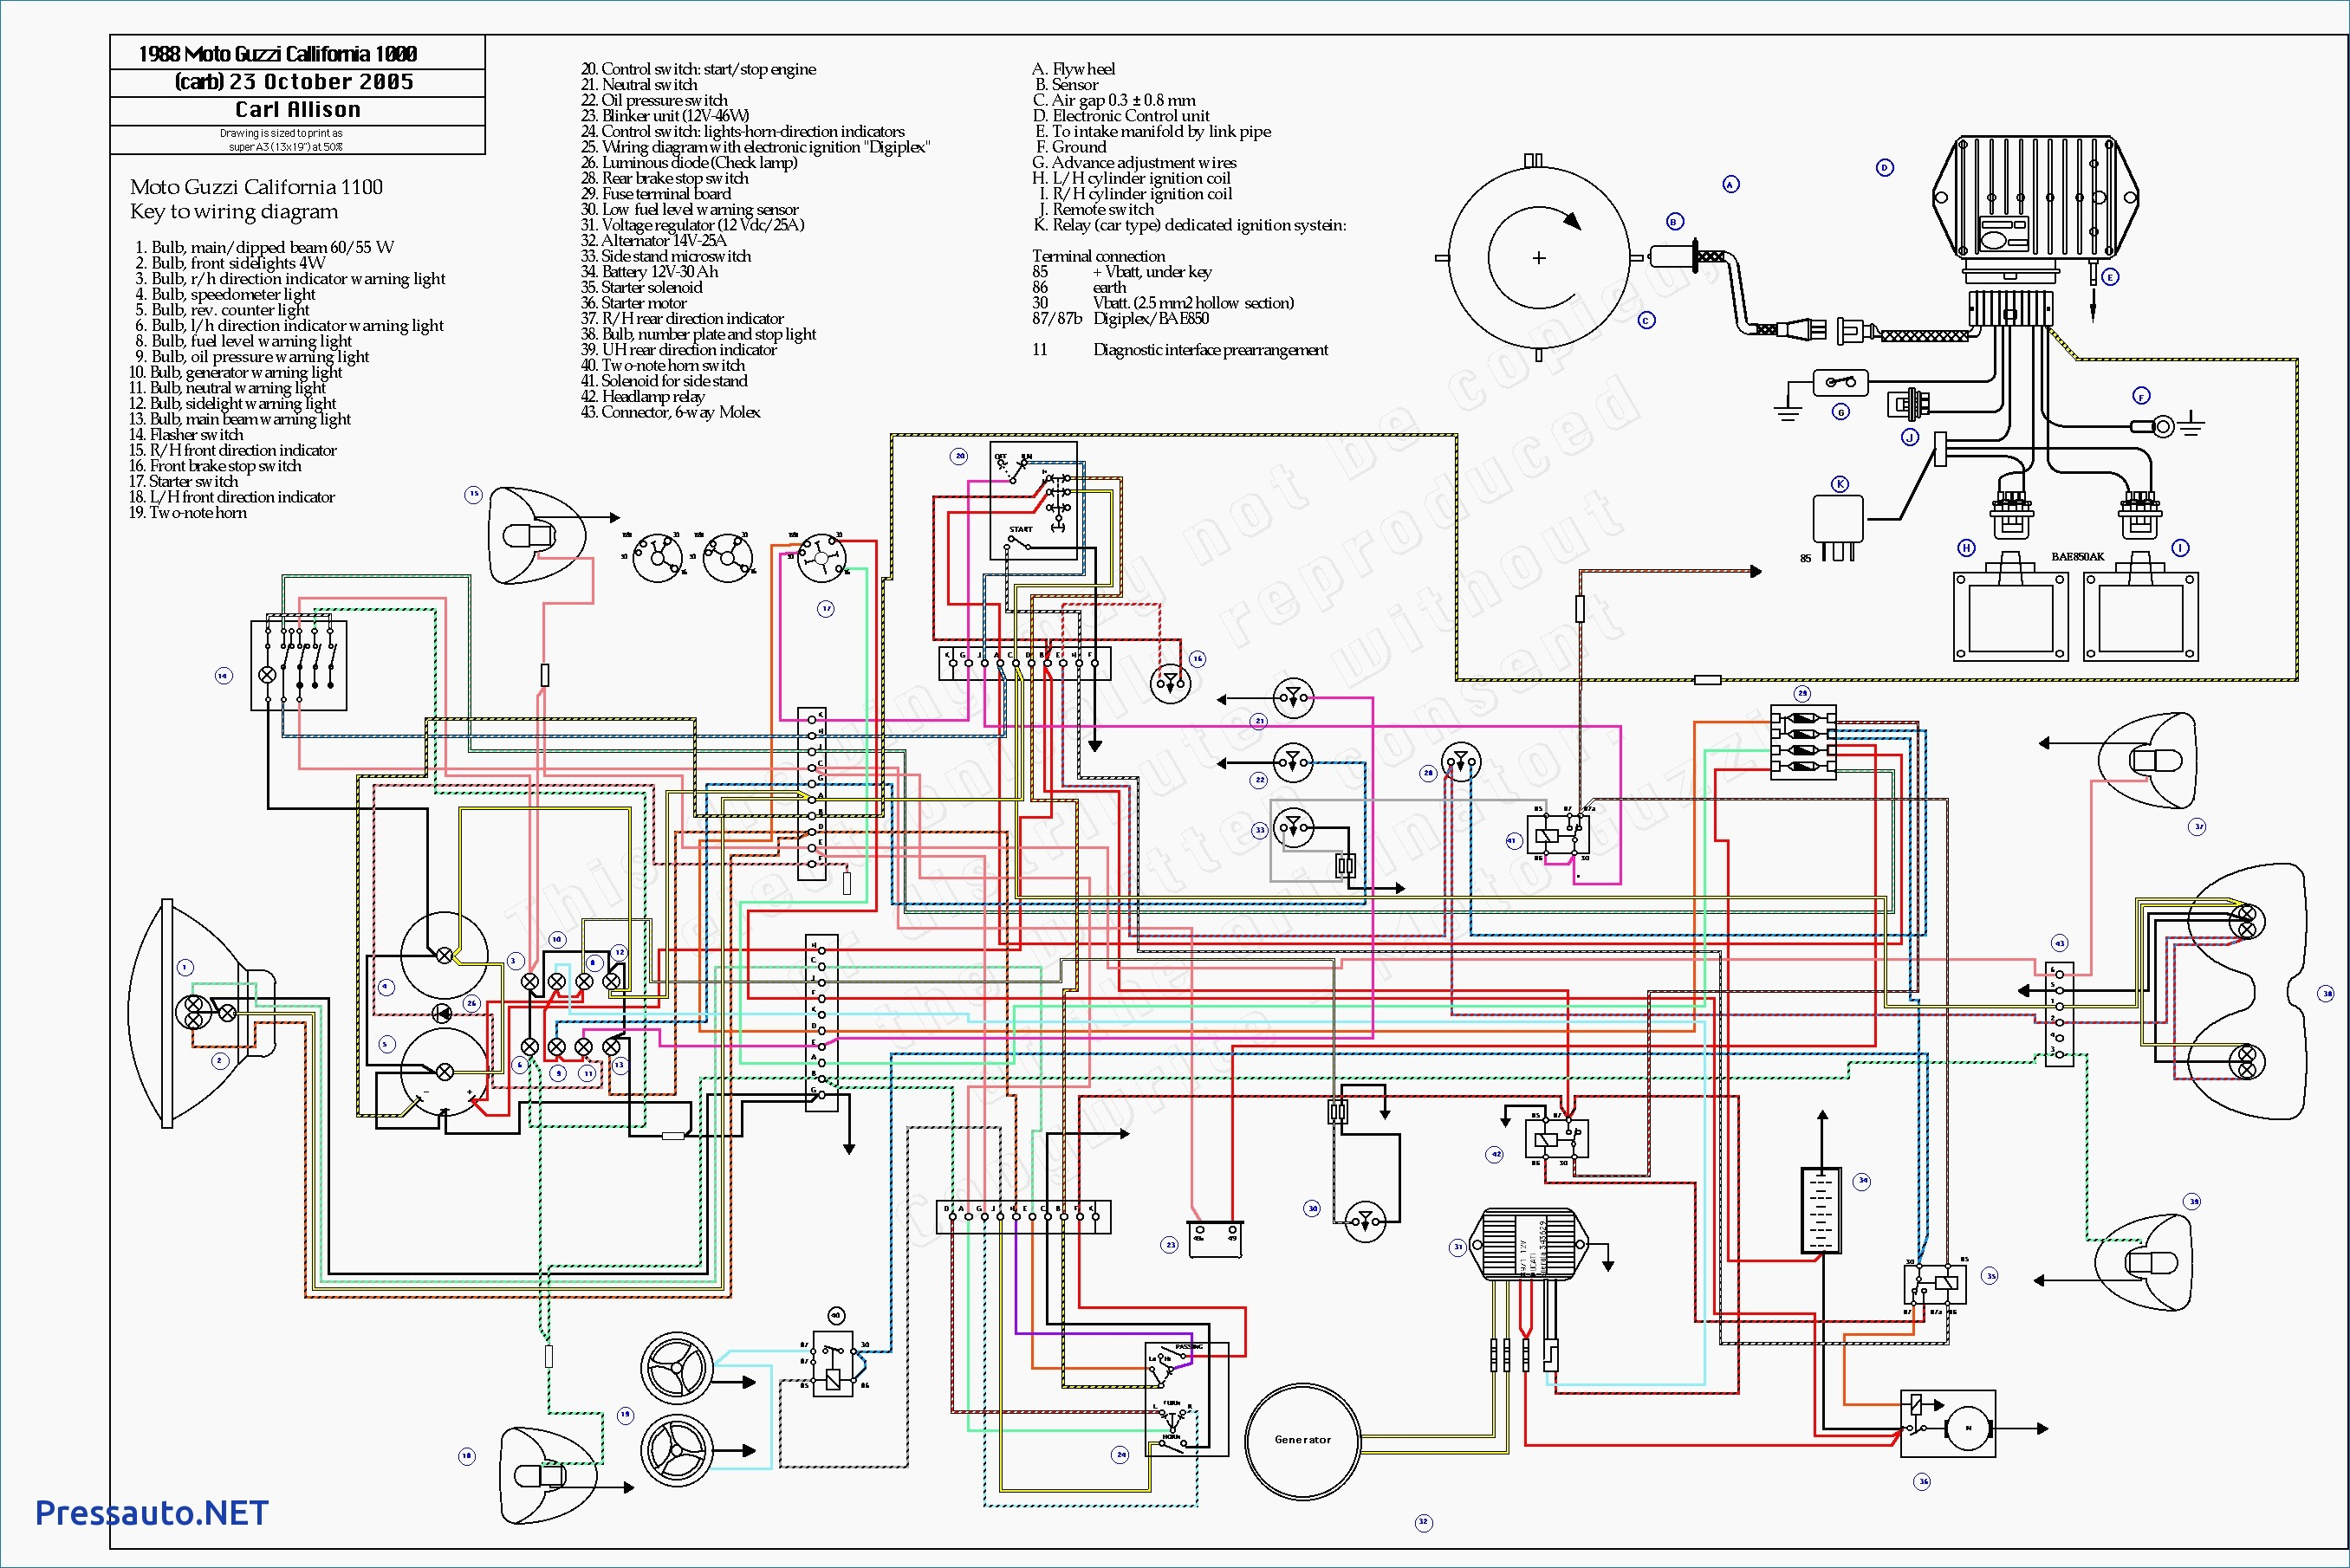 Toyota Pickup Wiring Diagram from detoxicrecenze.com